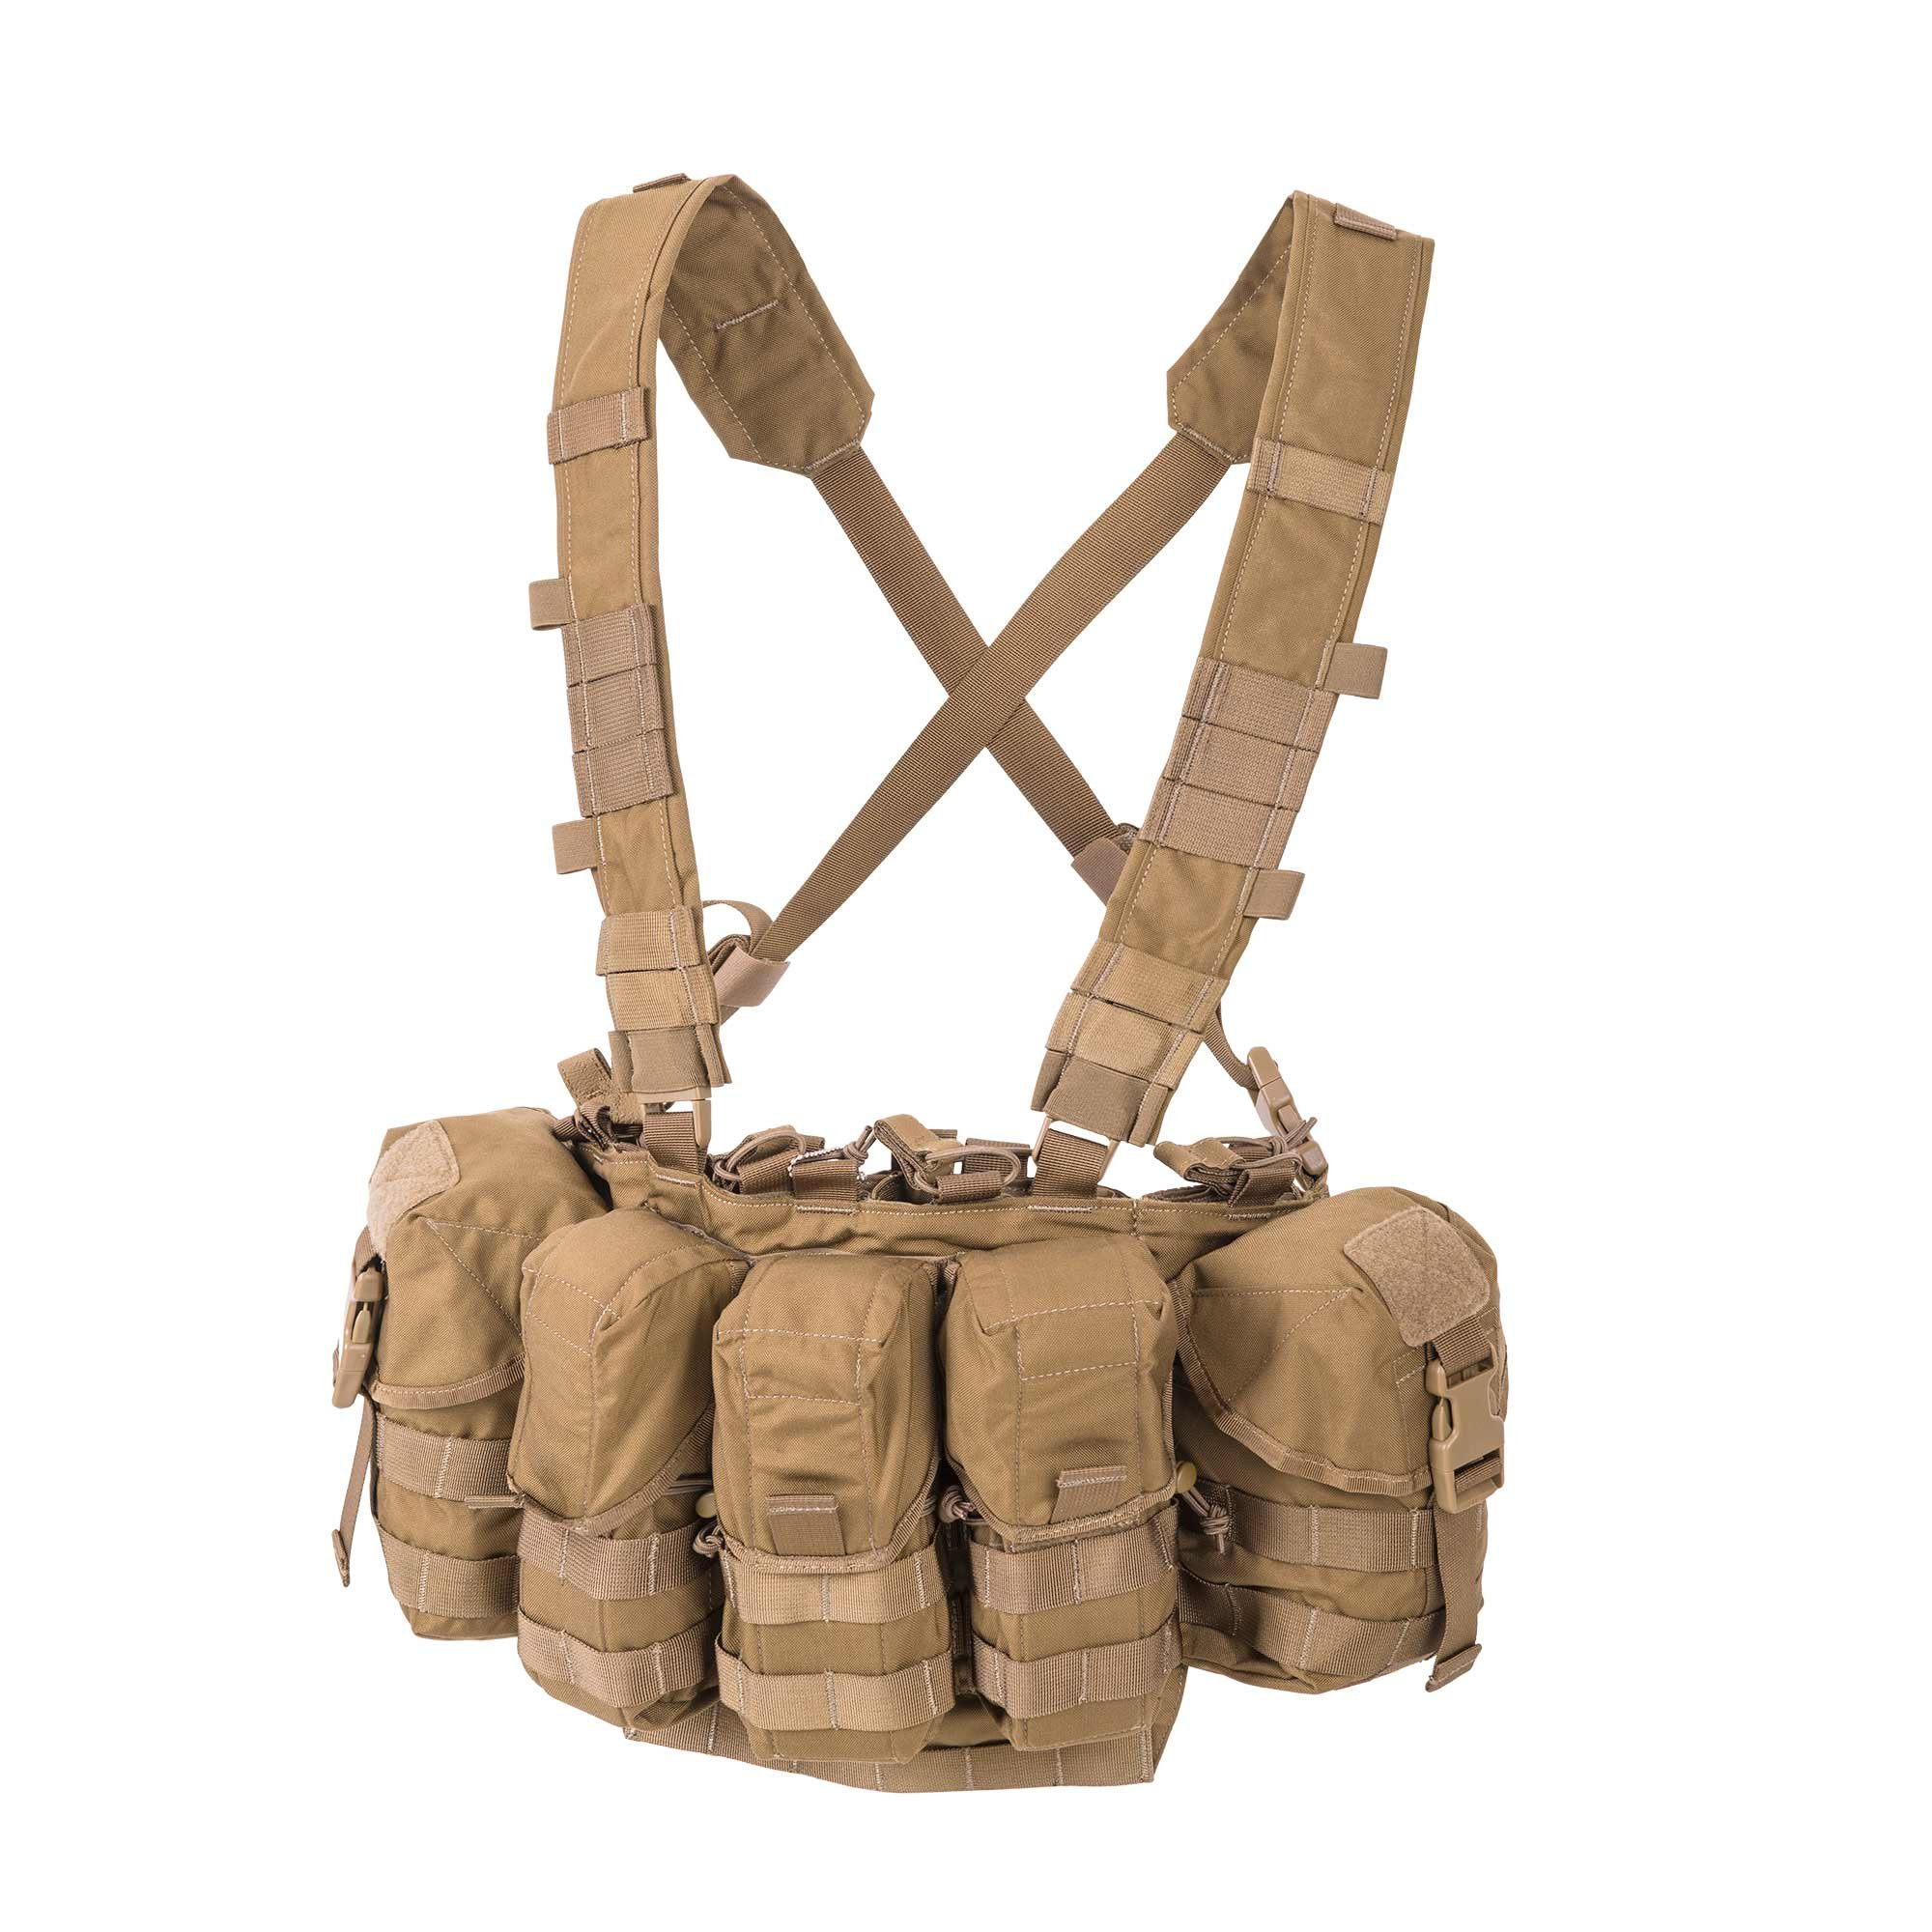 Helikon-Tex Patrol Line, Guardian Chest Rig Coyote Brown by Helikon-Tex